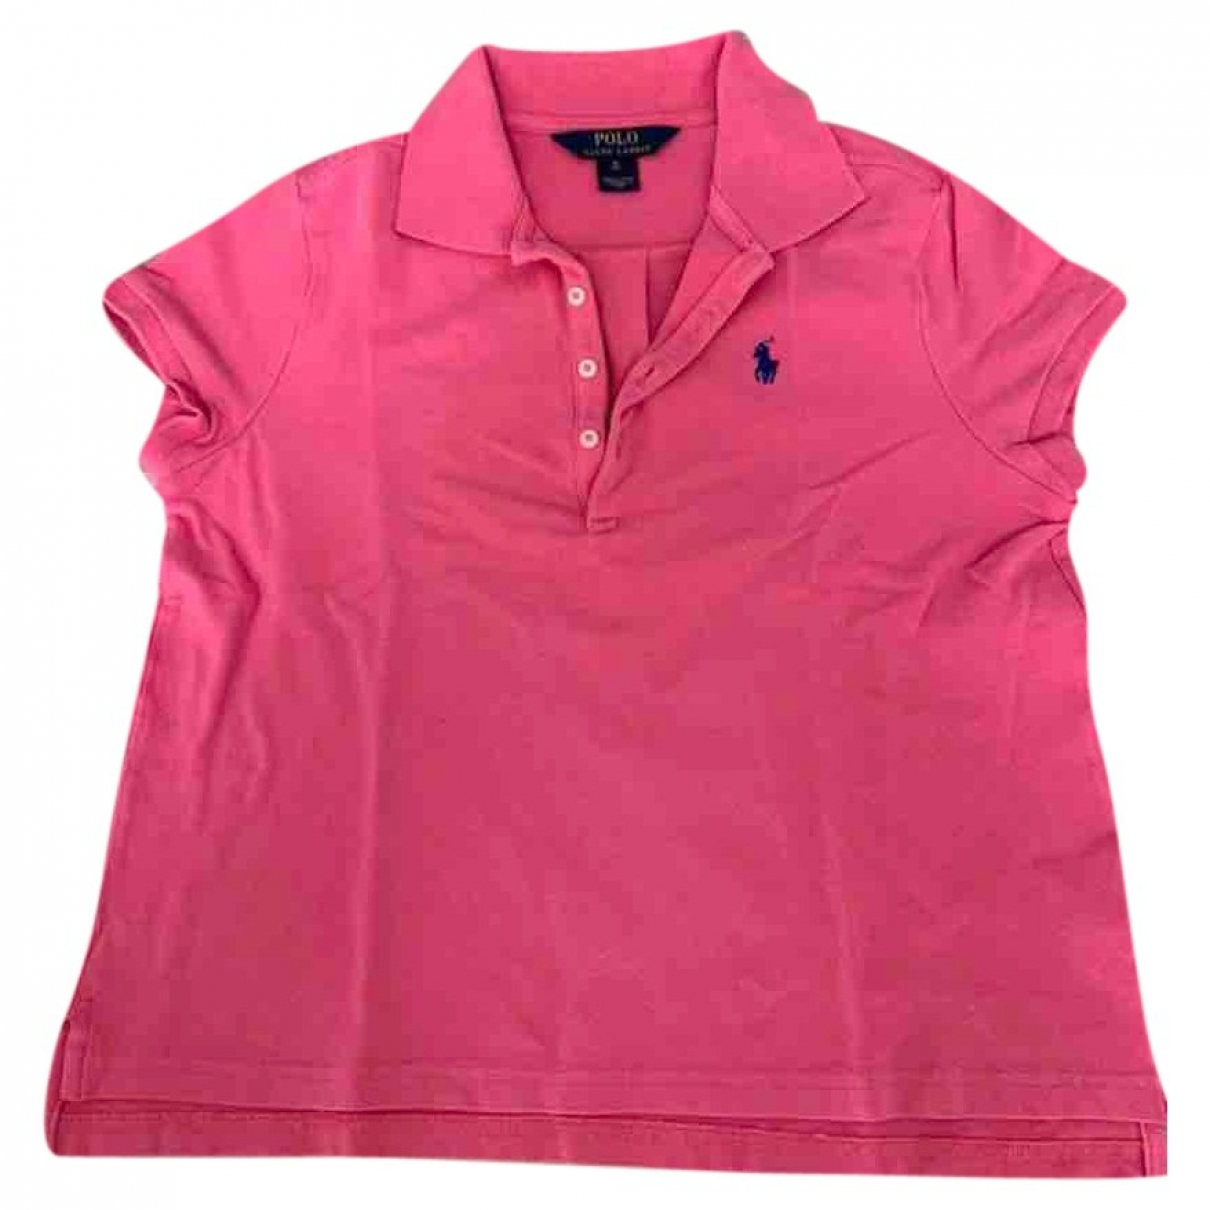 Polo Ralph Lauren \N Pink Cotton  top for Kids 16 years - M FR